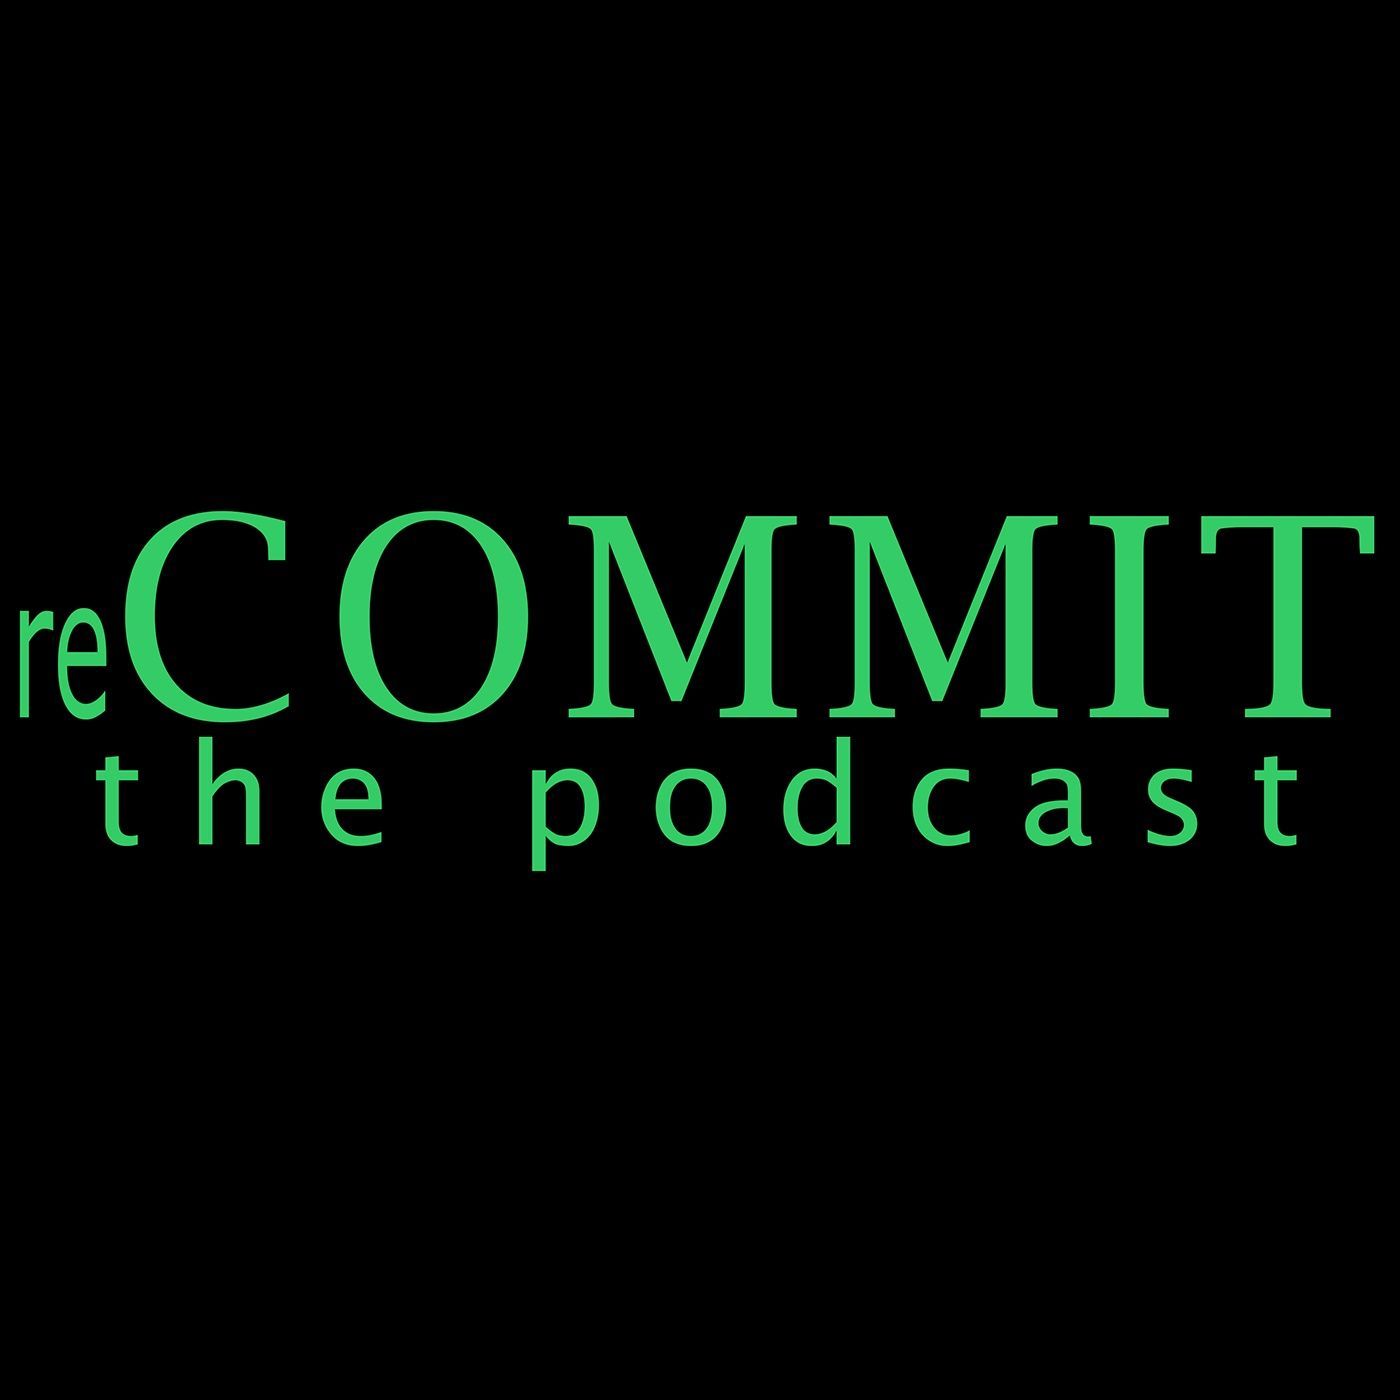 reCOMMIT The Podcast - Trailer